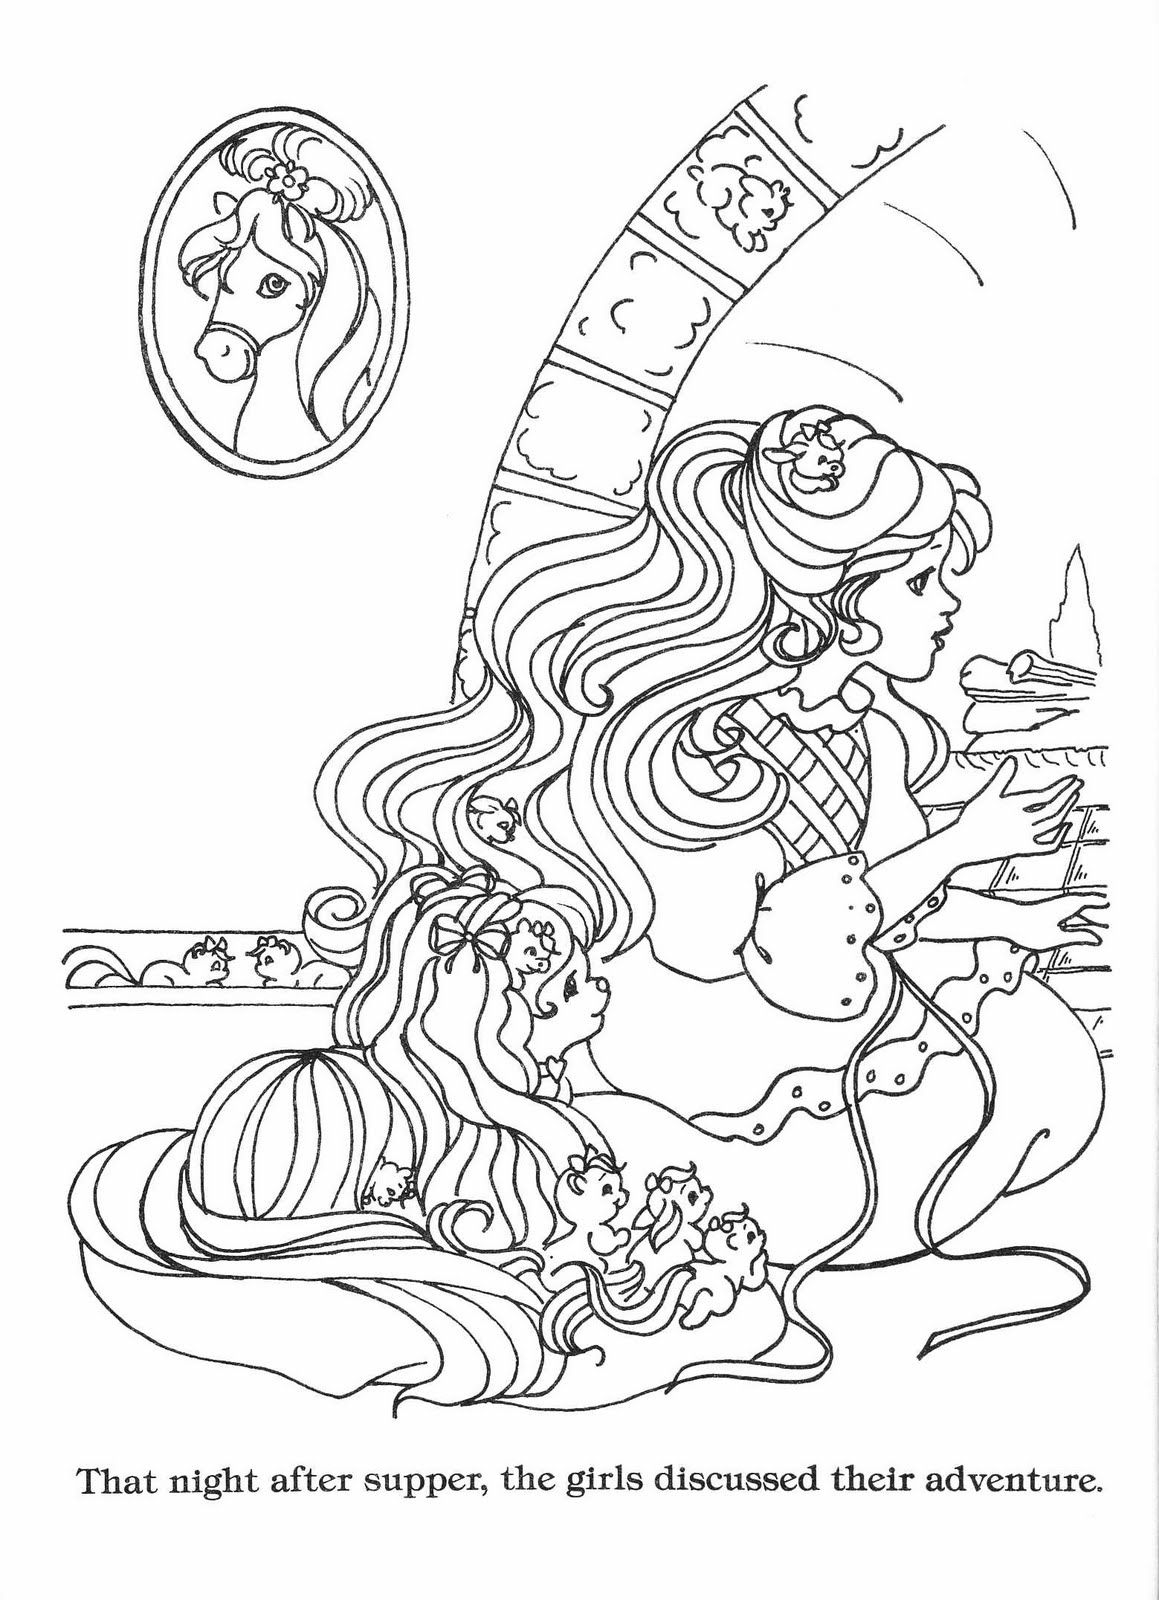 Lady Lovely Locks Coloring Book Lady Lovely Locks The Begining Edited For Printing Lady Lovely Locks Coloring Book Pages Cartoon Coloring Pages